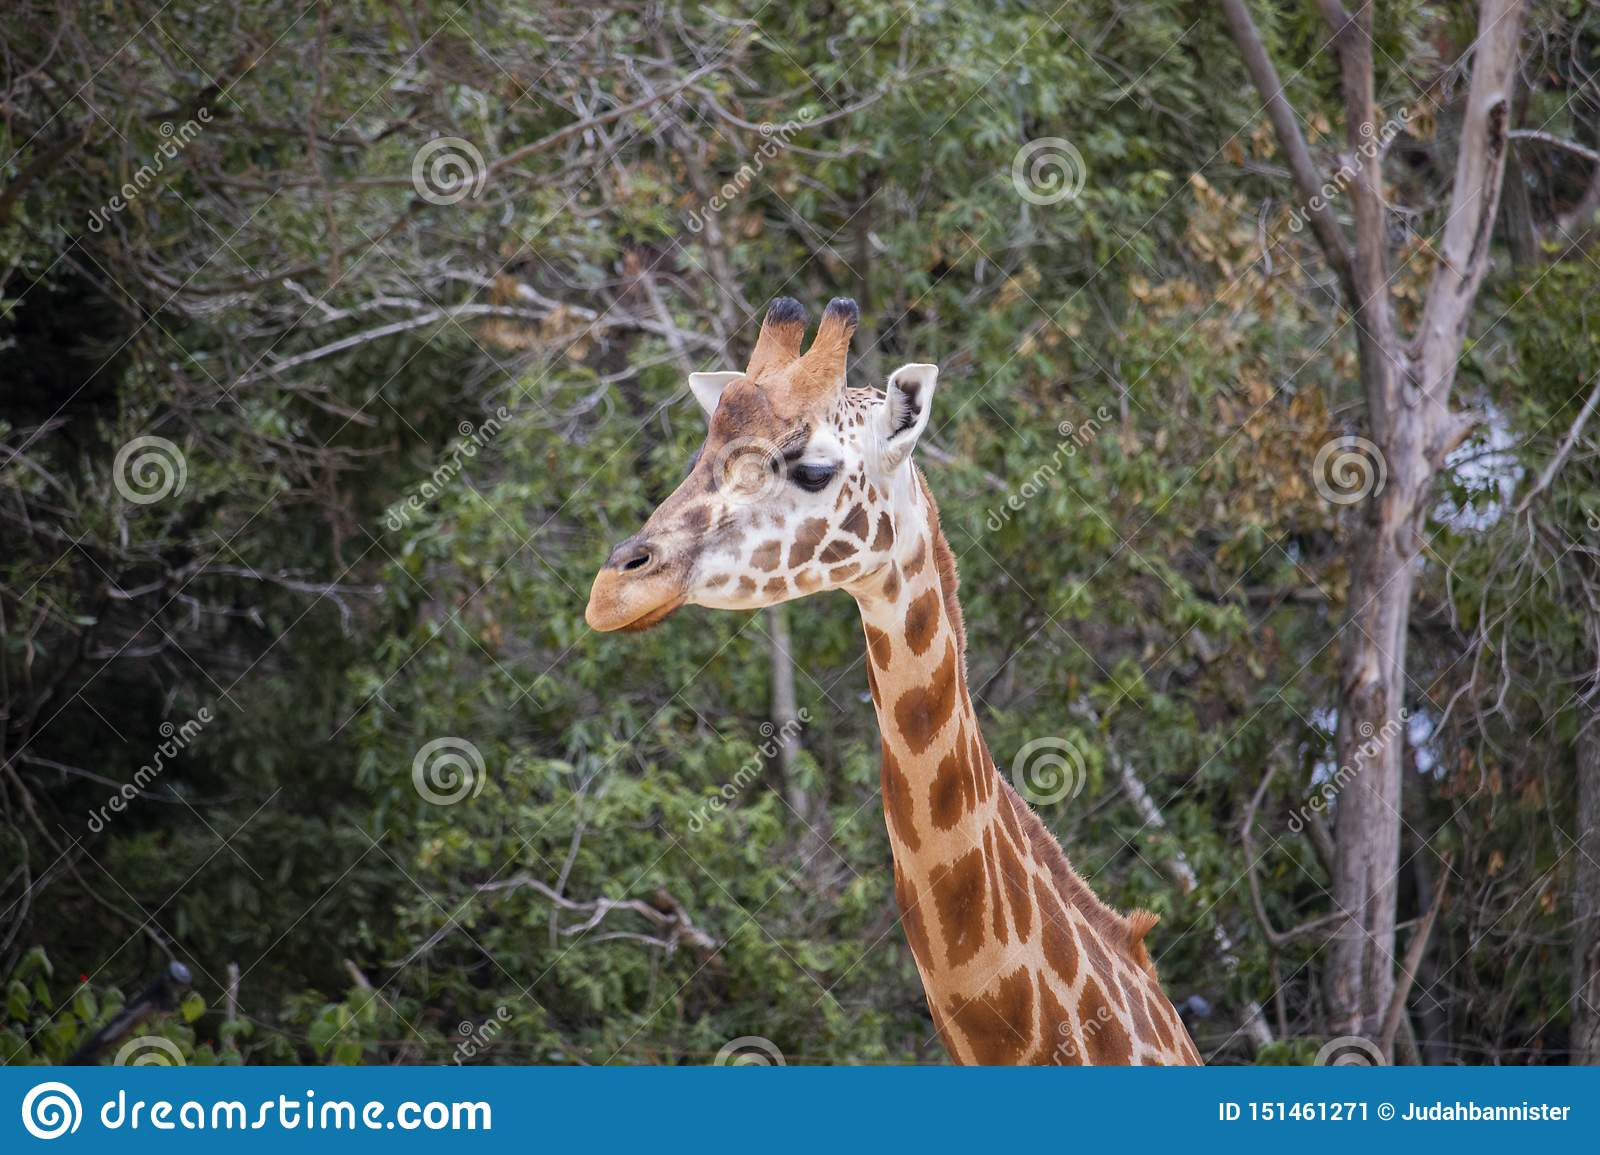 Giraffe from the neck up